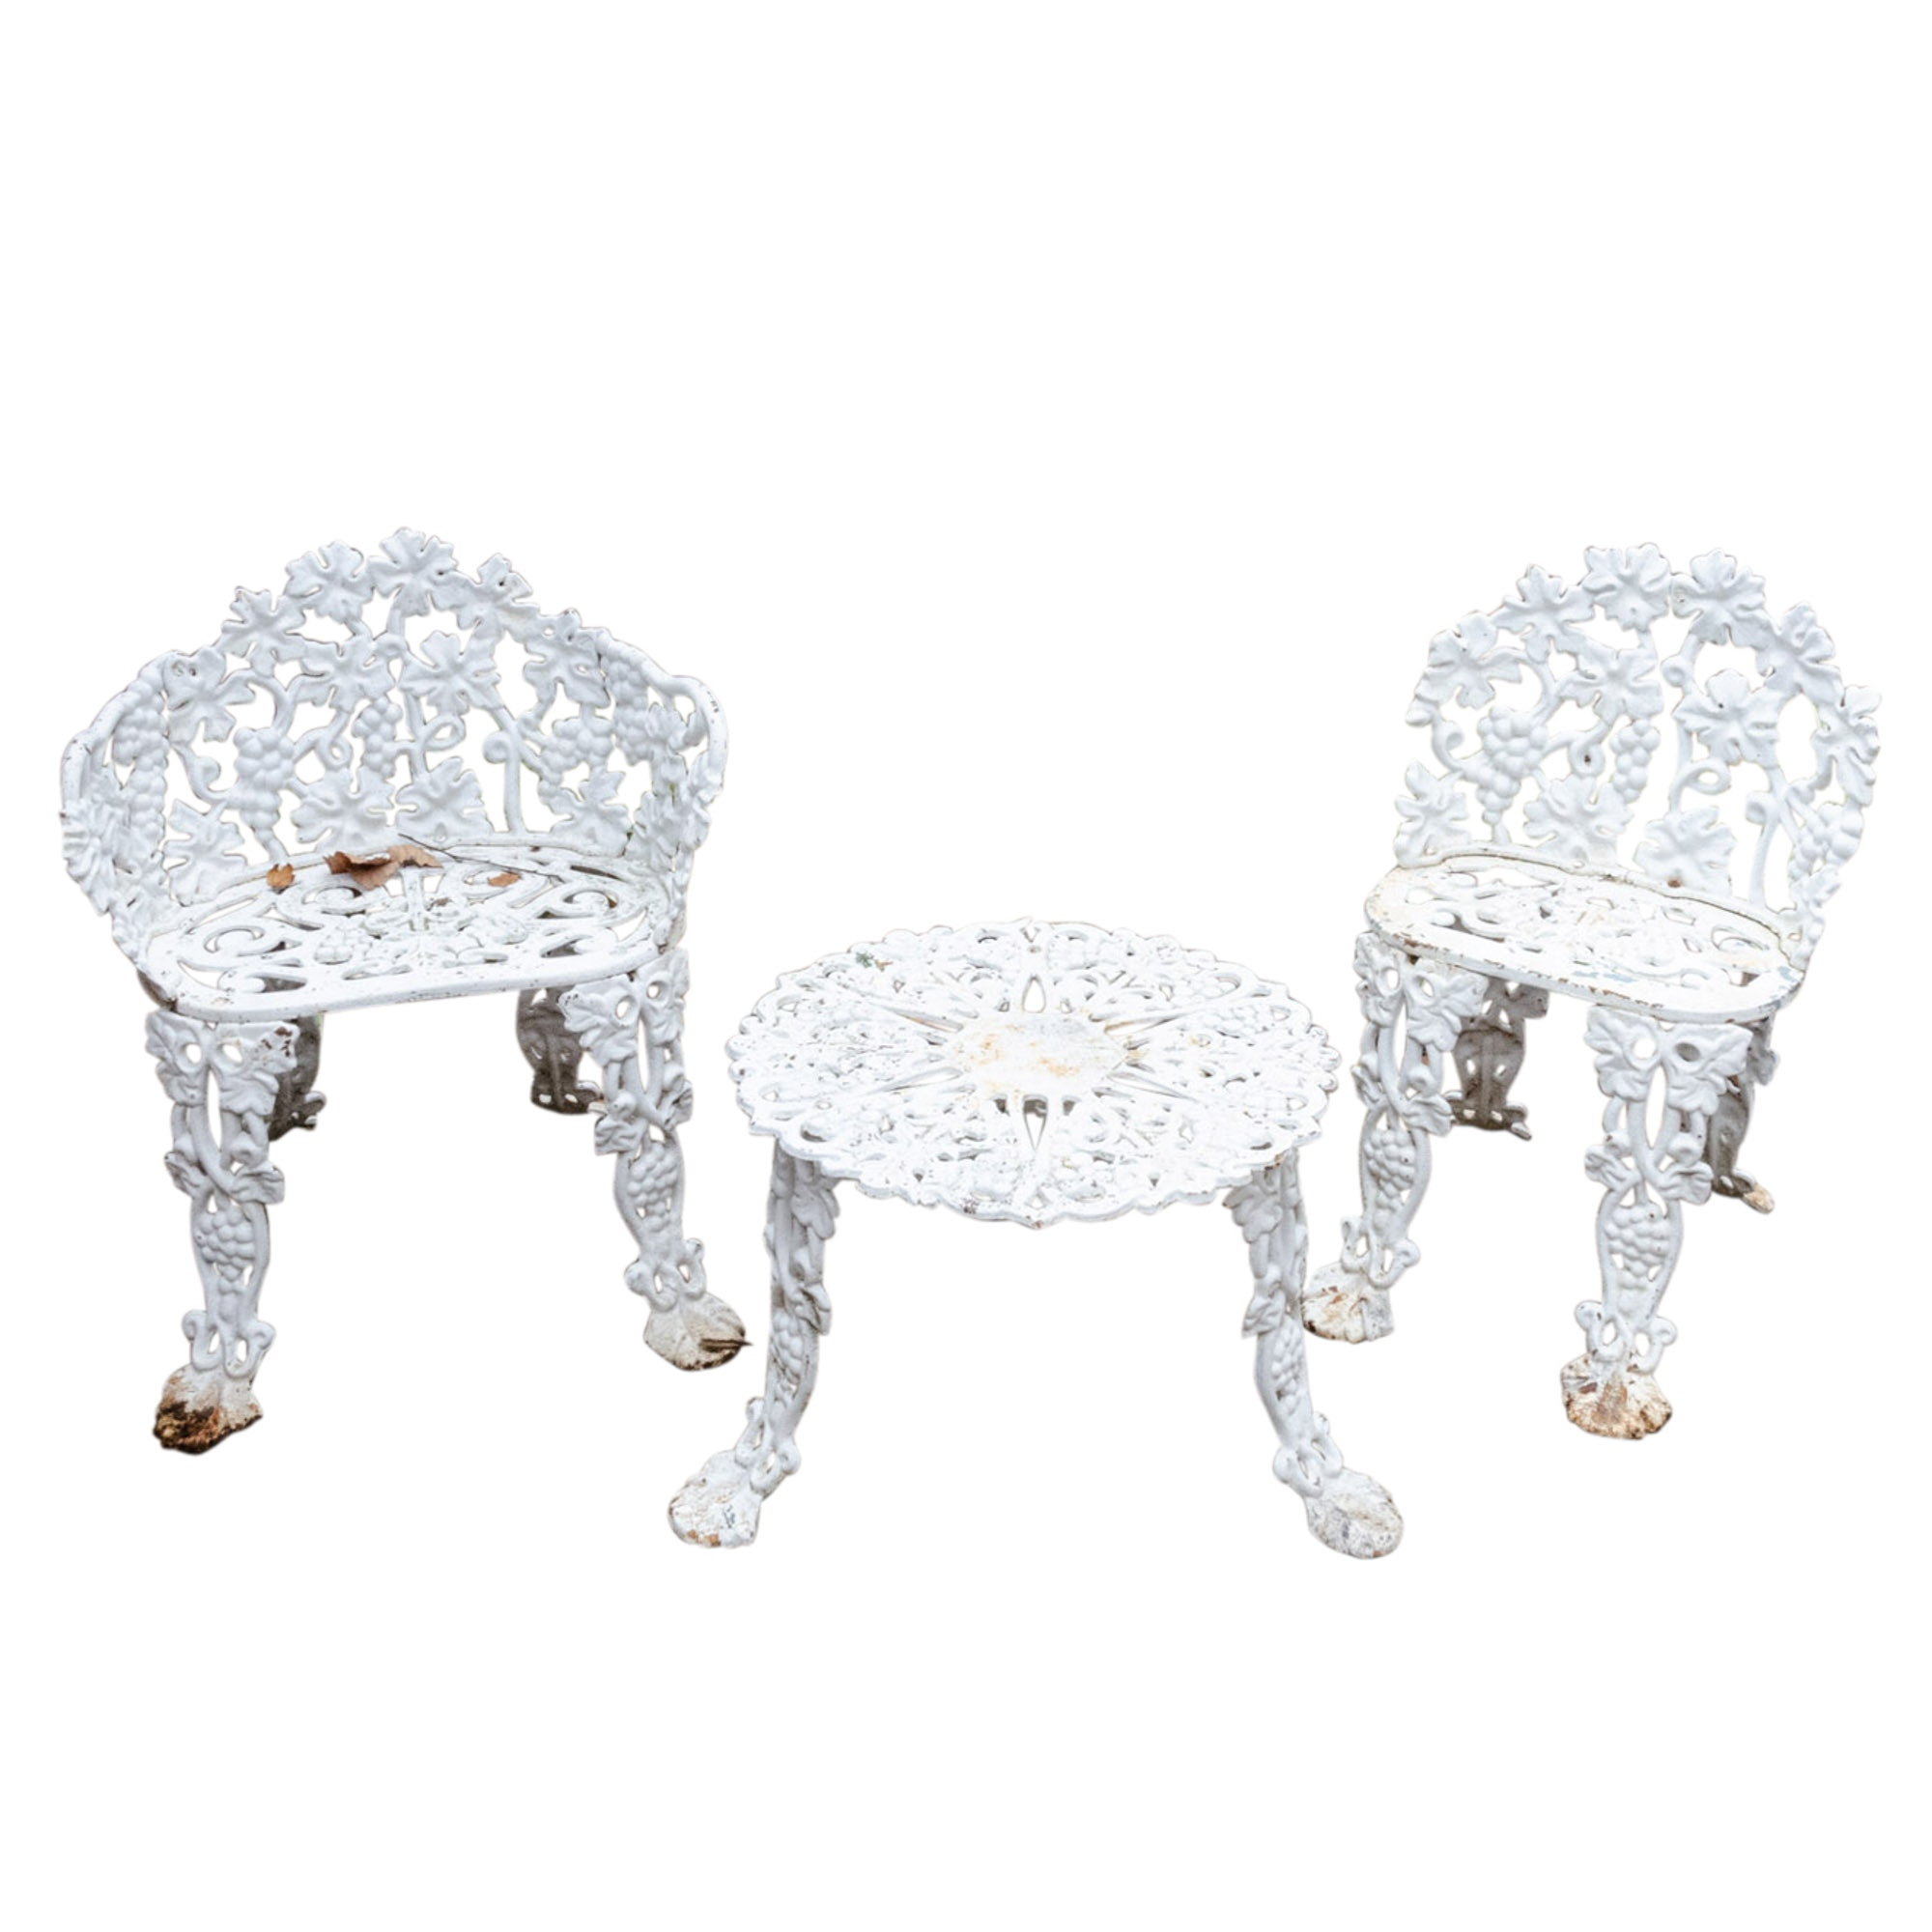 White Finish Grape Cluster and Vine Motif Cast Iron Garden Table and Chairs